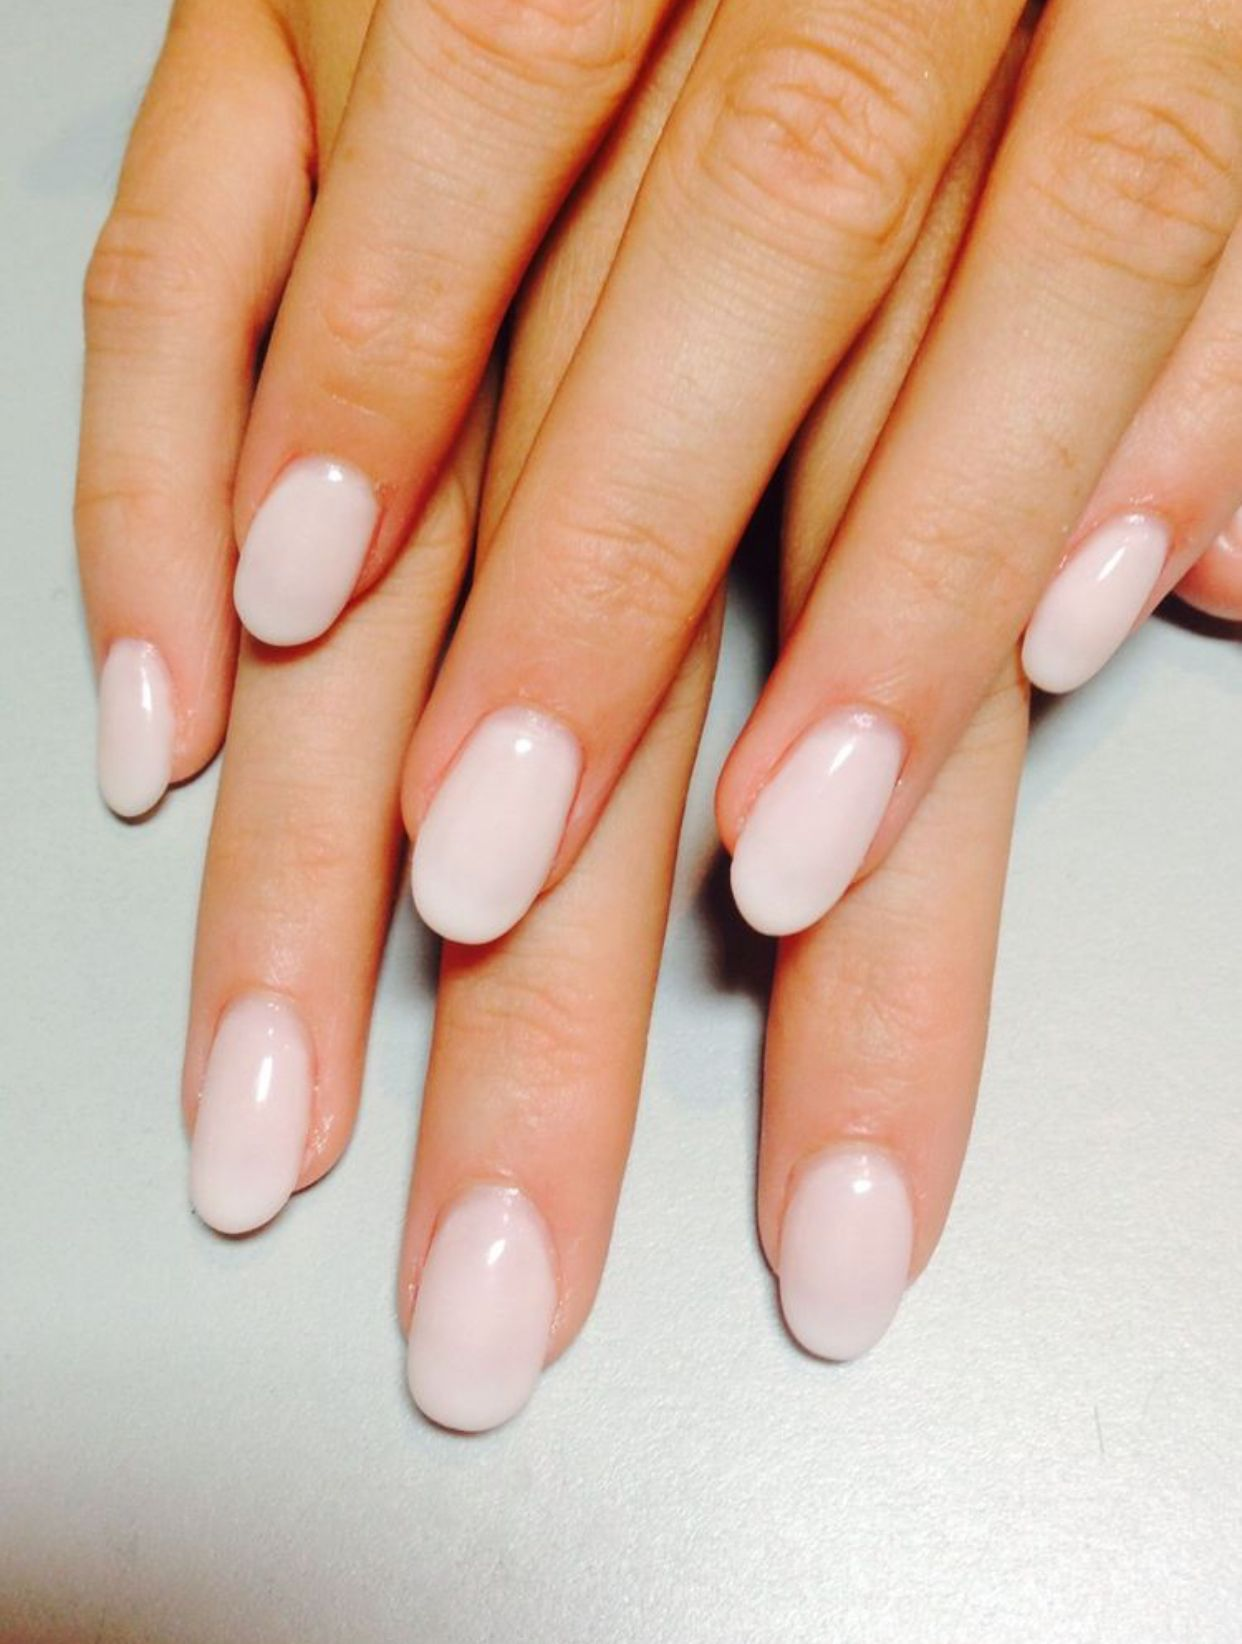 Pin By Amanda Bell On N A I L S Natural Acrylic Nails Rounded Acrylic Nails Pink Manicure